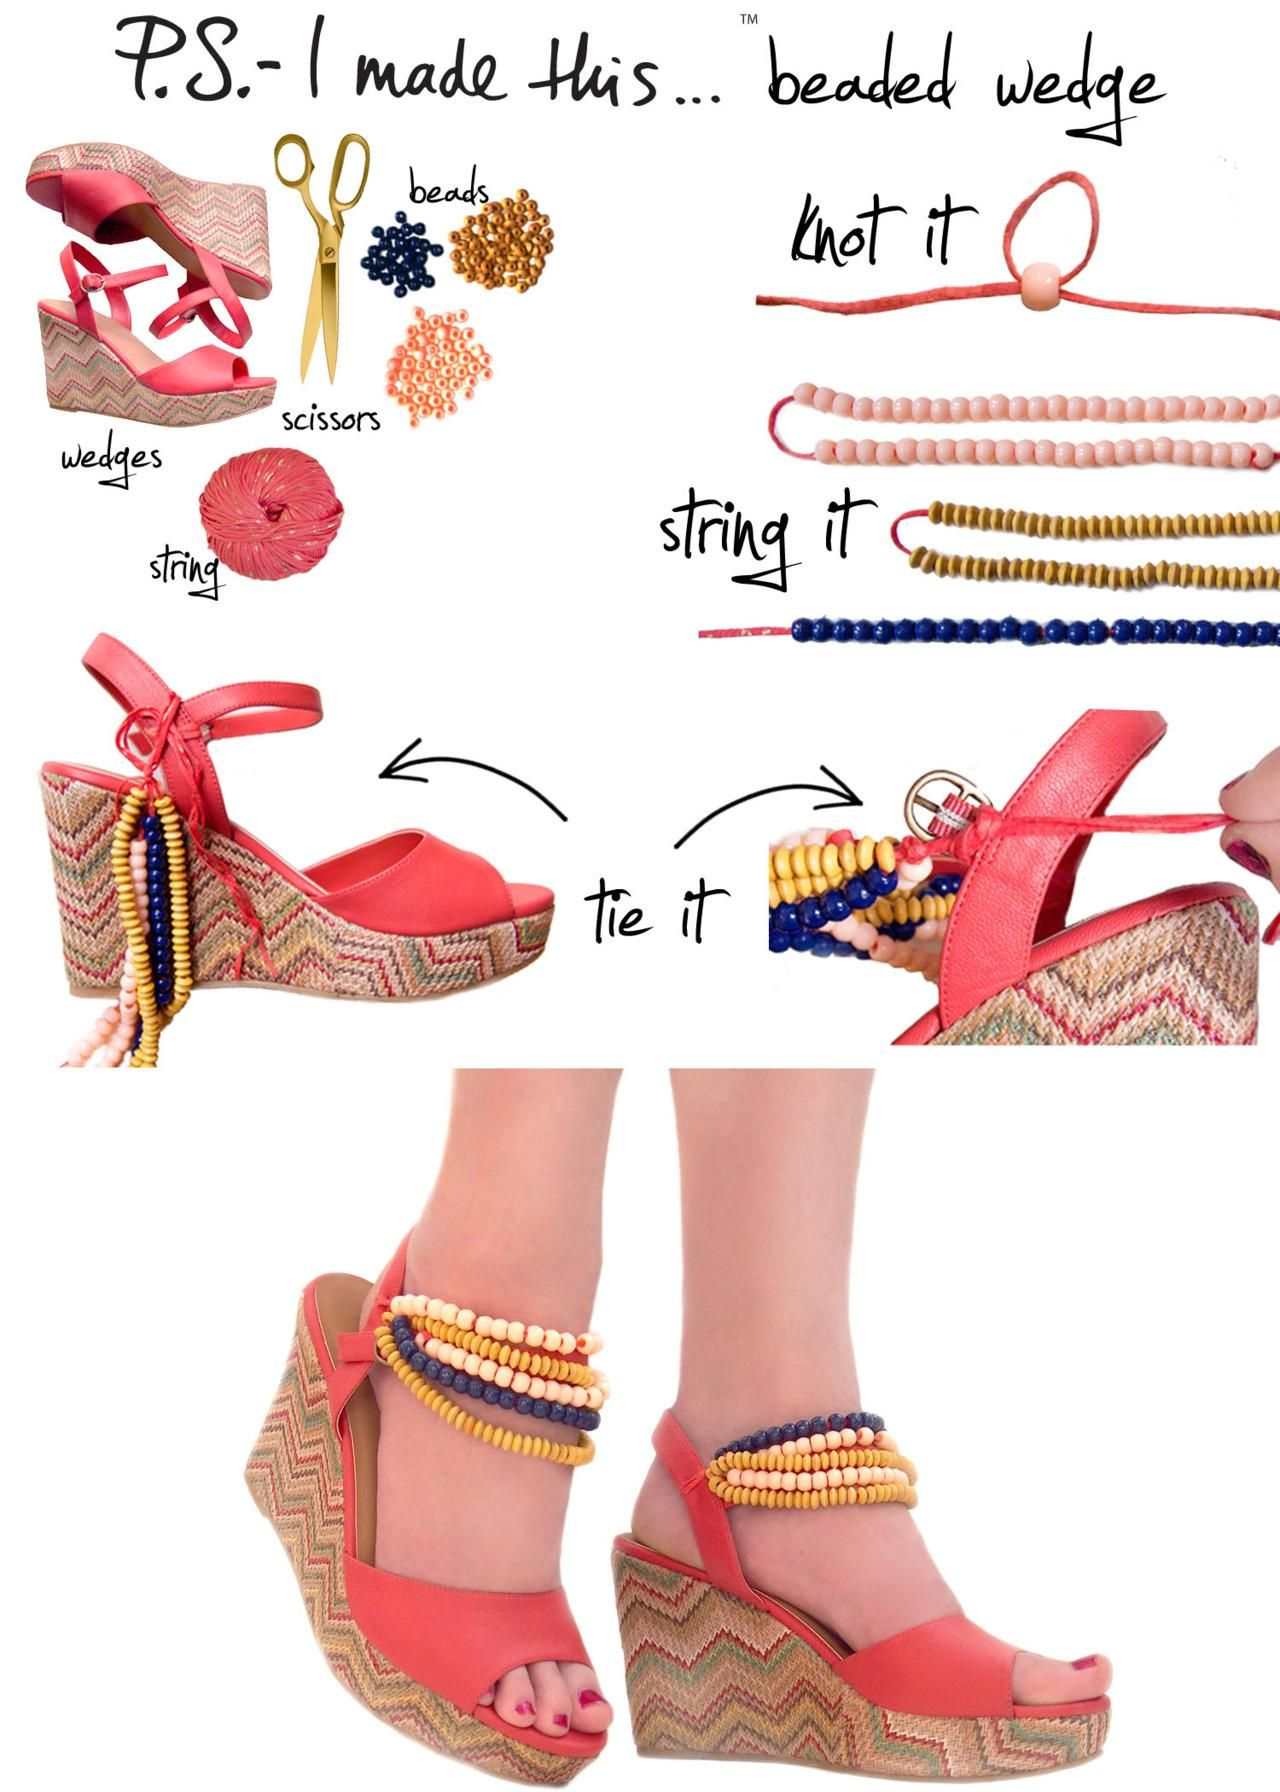 Discussion on this topic: Flirty And Bold DIY Pom Pom Heels, flirty-and-bold-diy-pom-pom-heels/